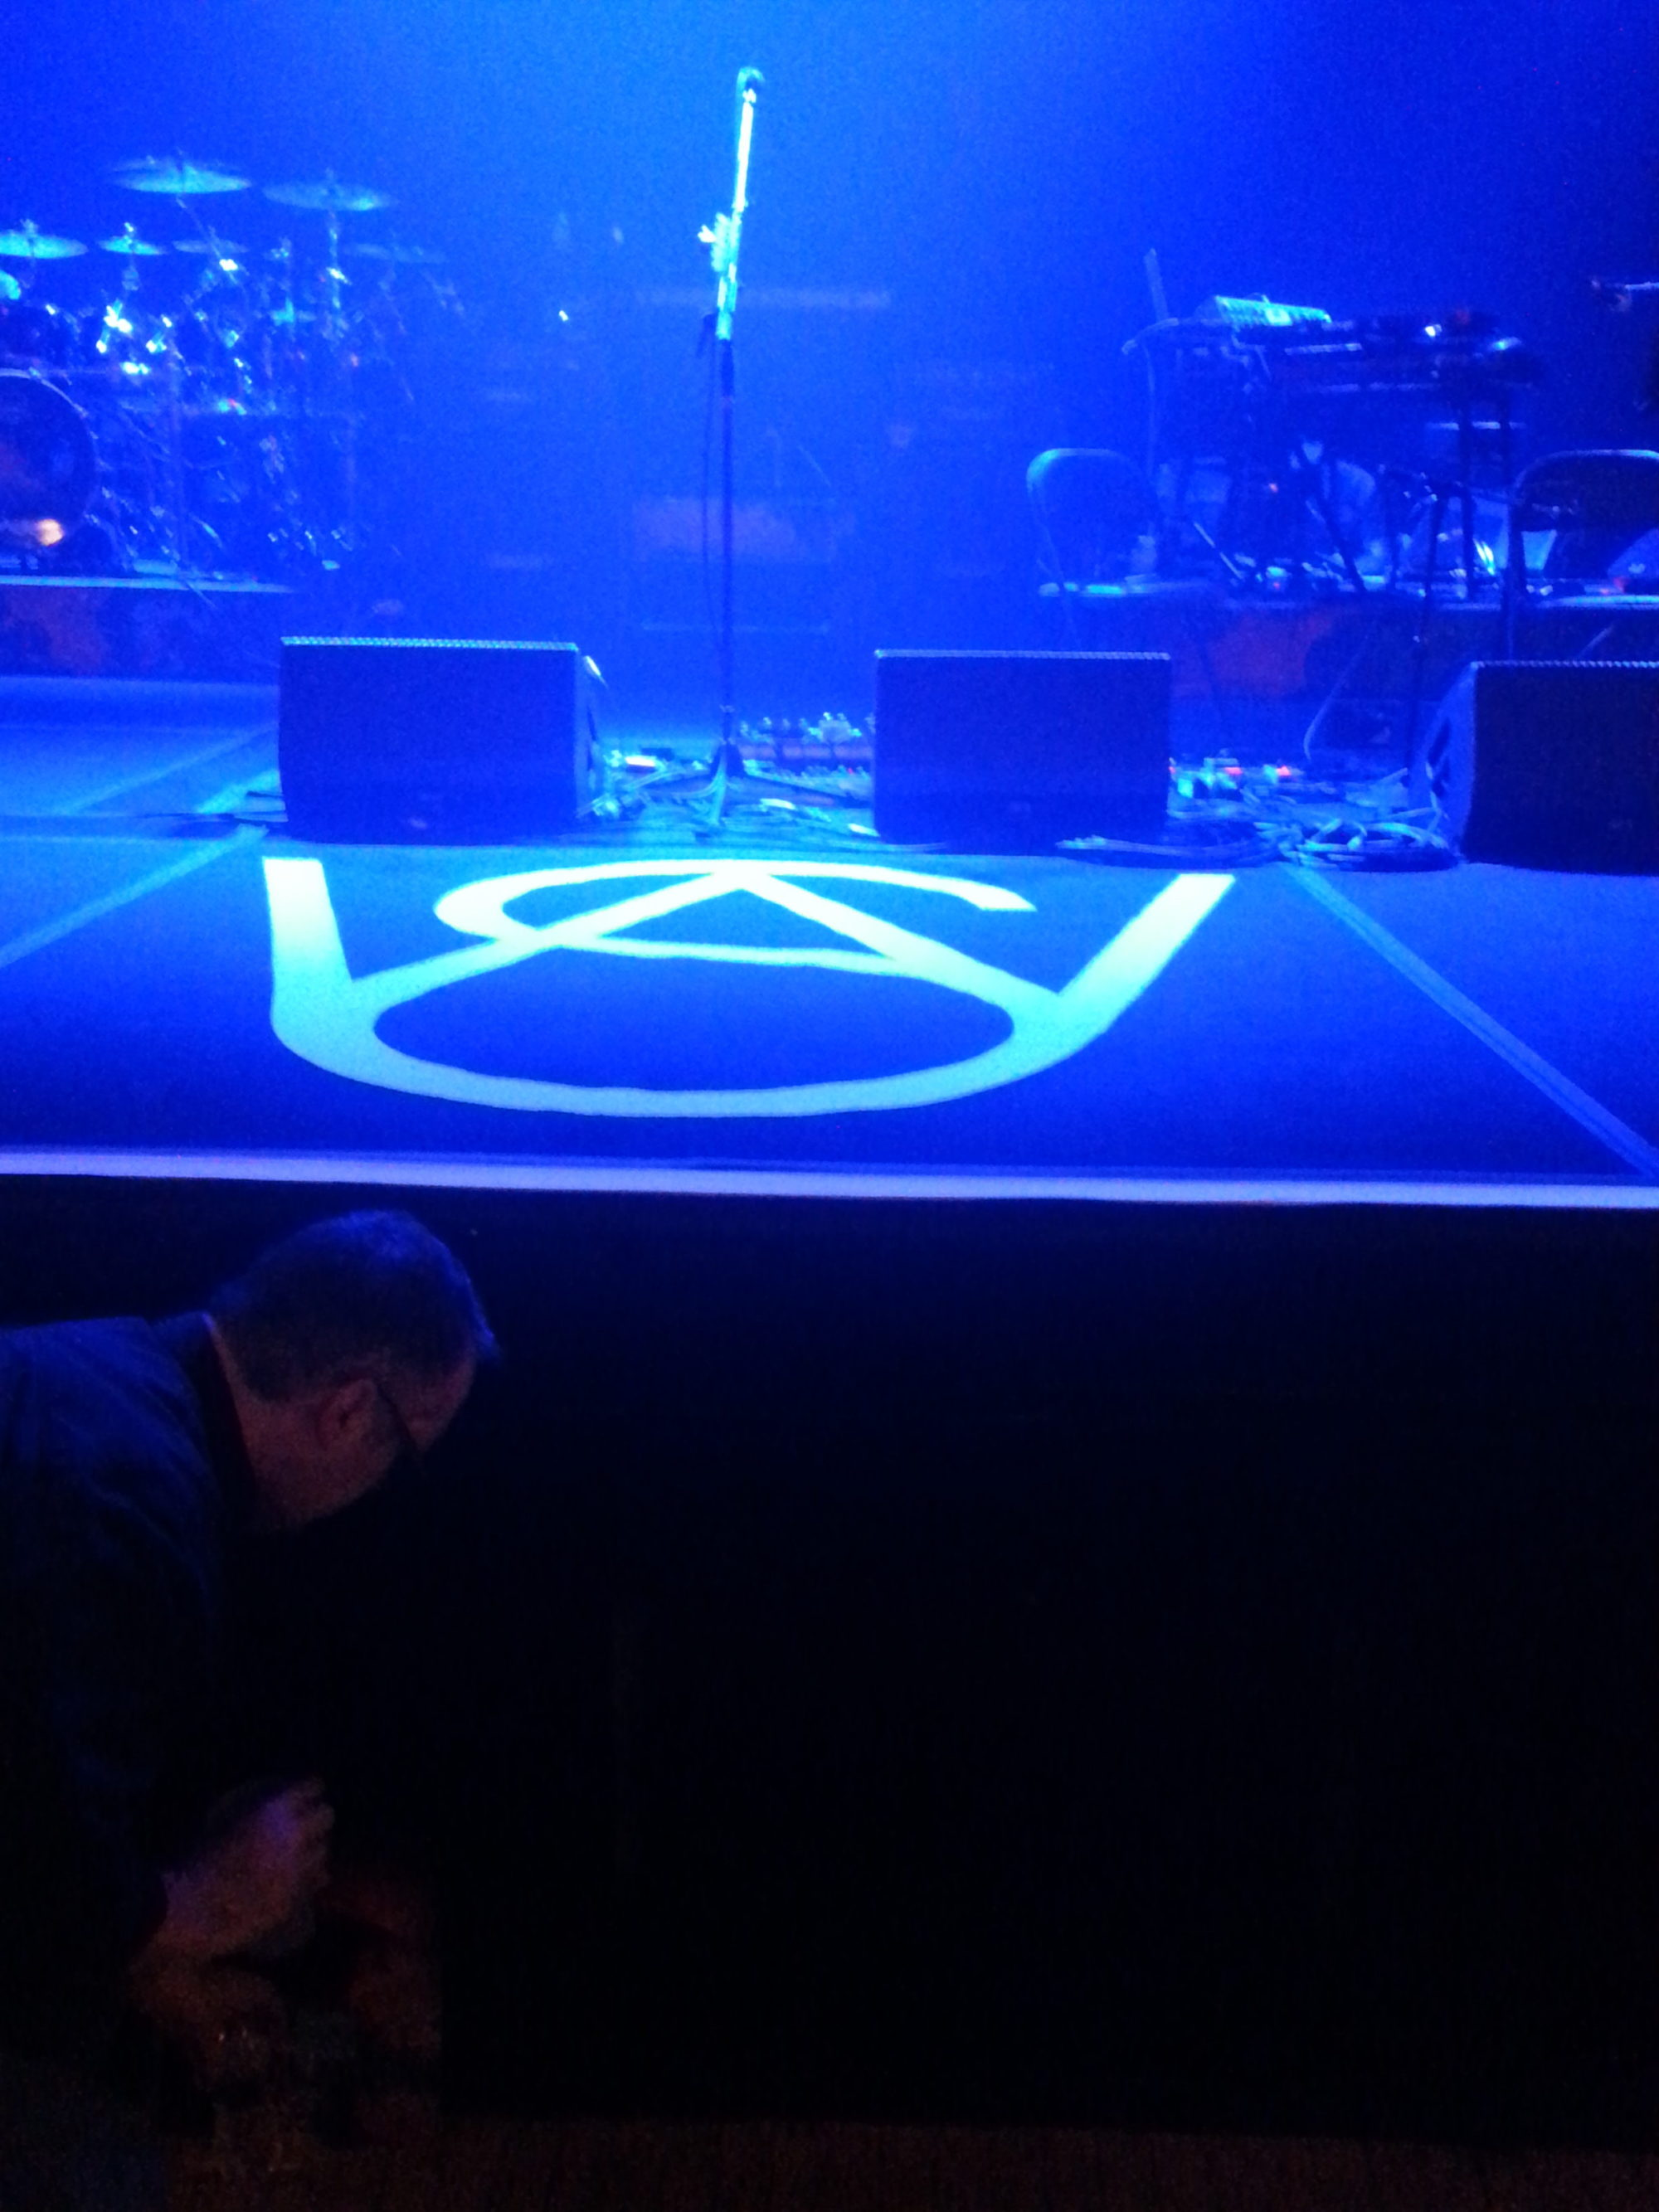 Photo of the stage, pre-show, taken by Chris